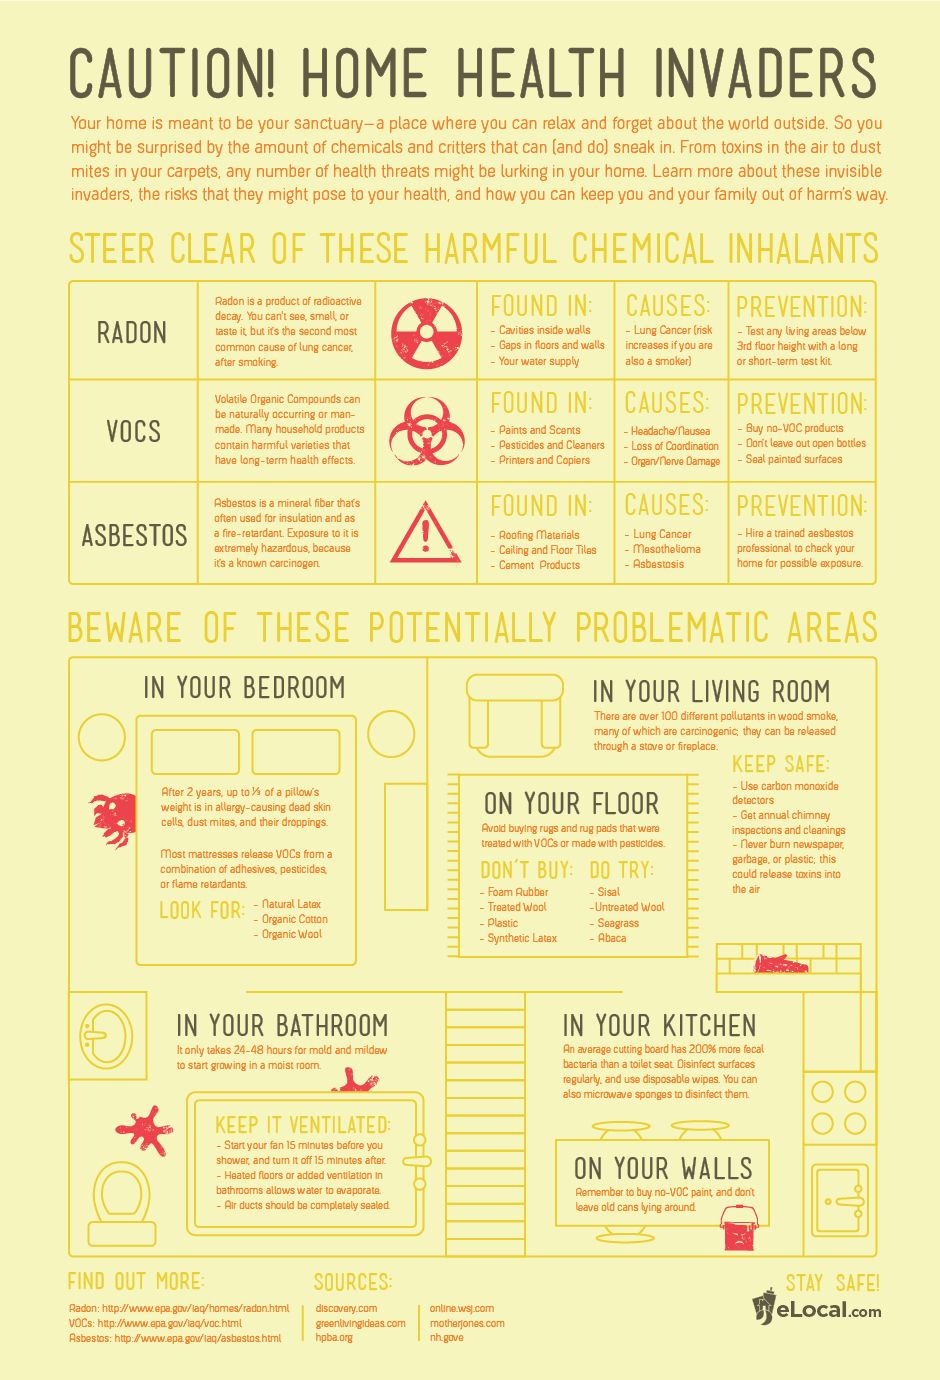 Caution home health invaders infographic display containing radon home health invaders infographic display containing radon vocs asbestos urtaz Choice Image